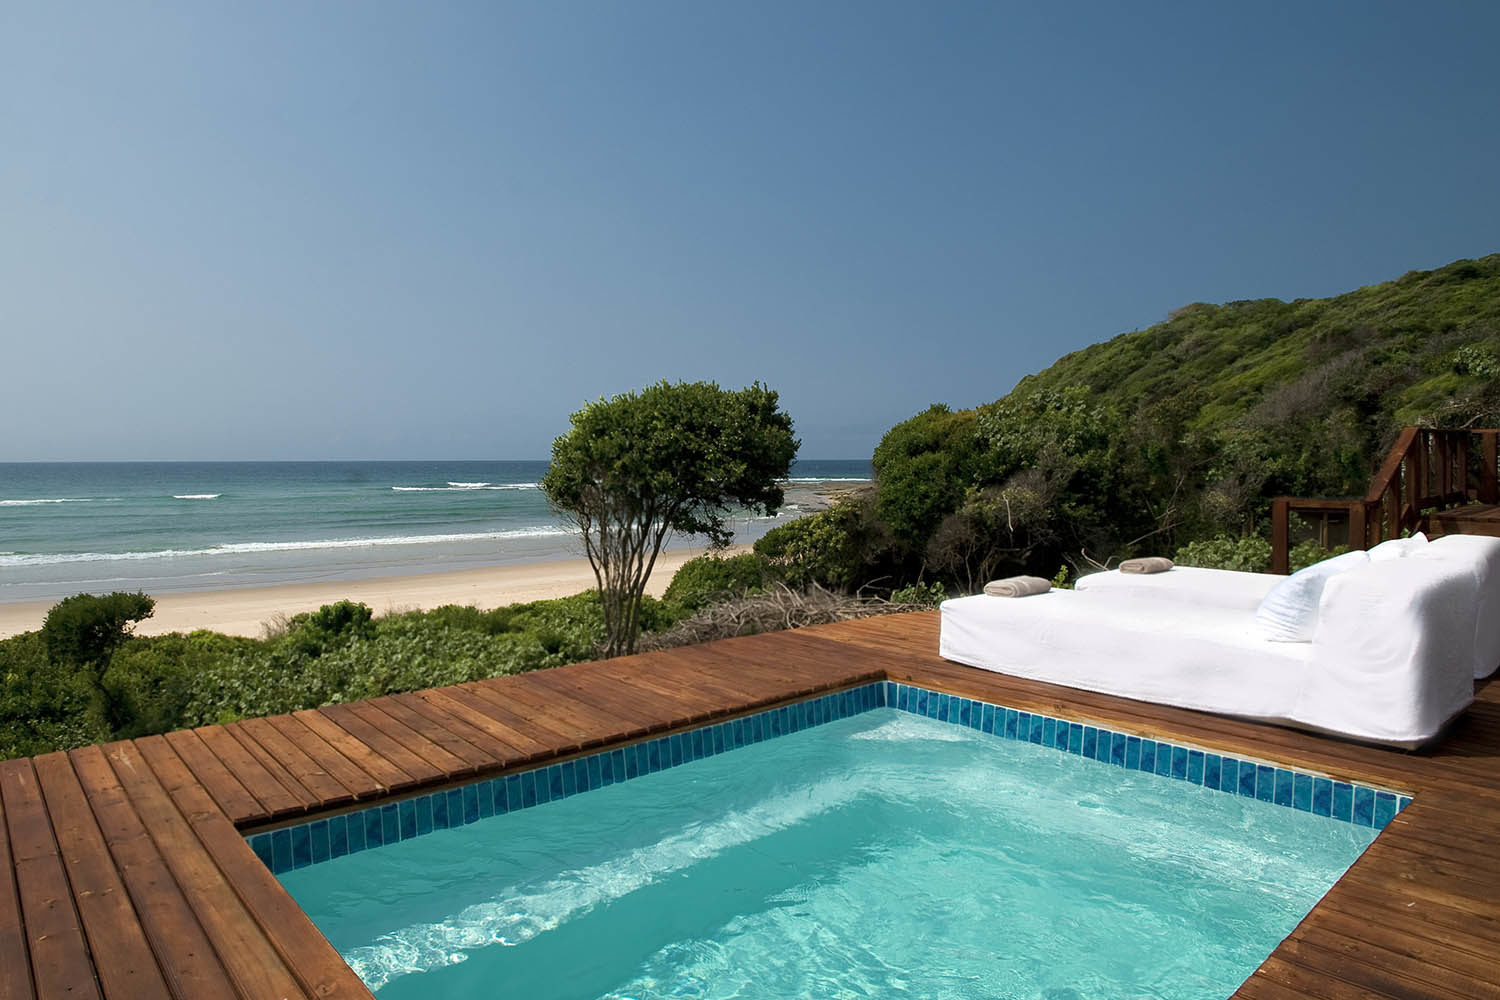 white-pearl resort mozambique-lodges-zitundo-zambia-in-style-pool-deck